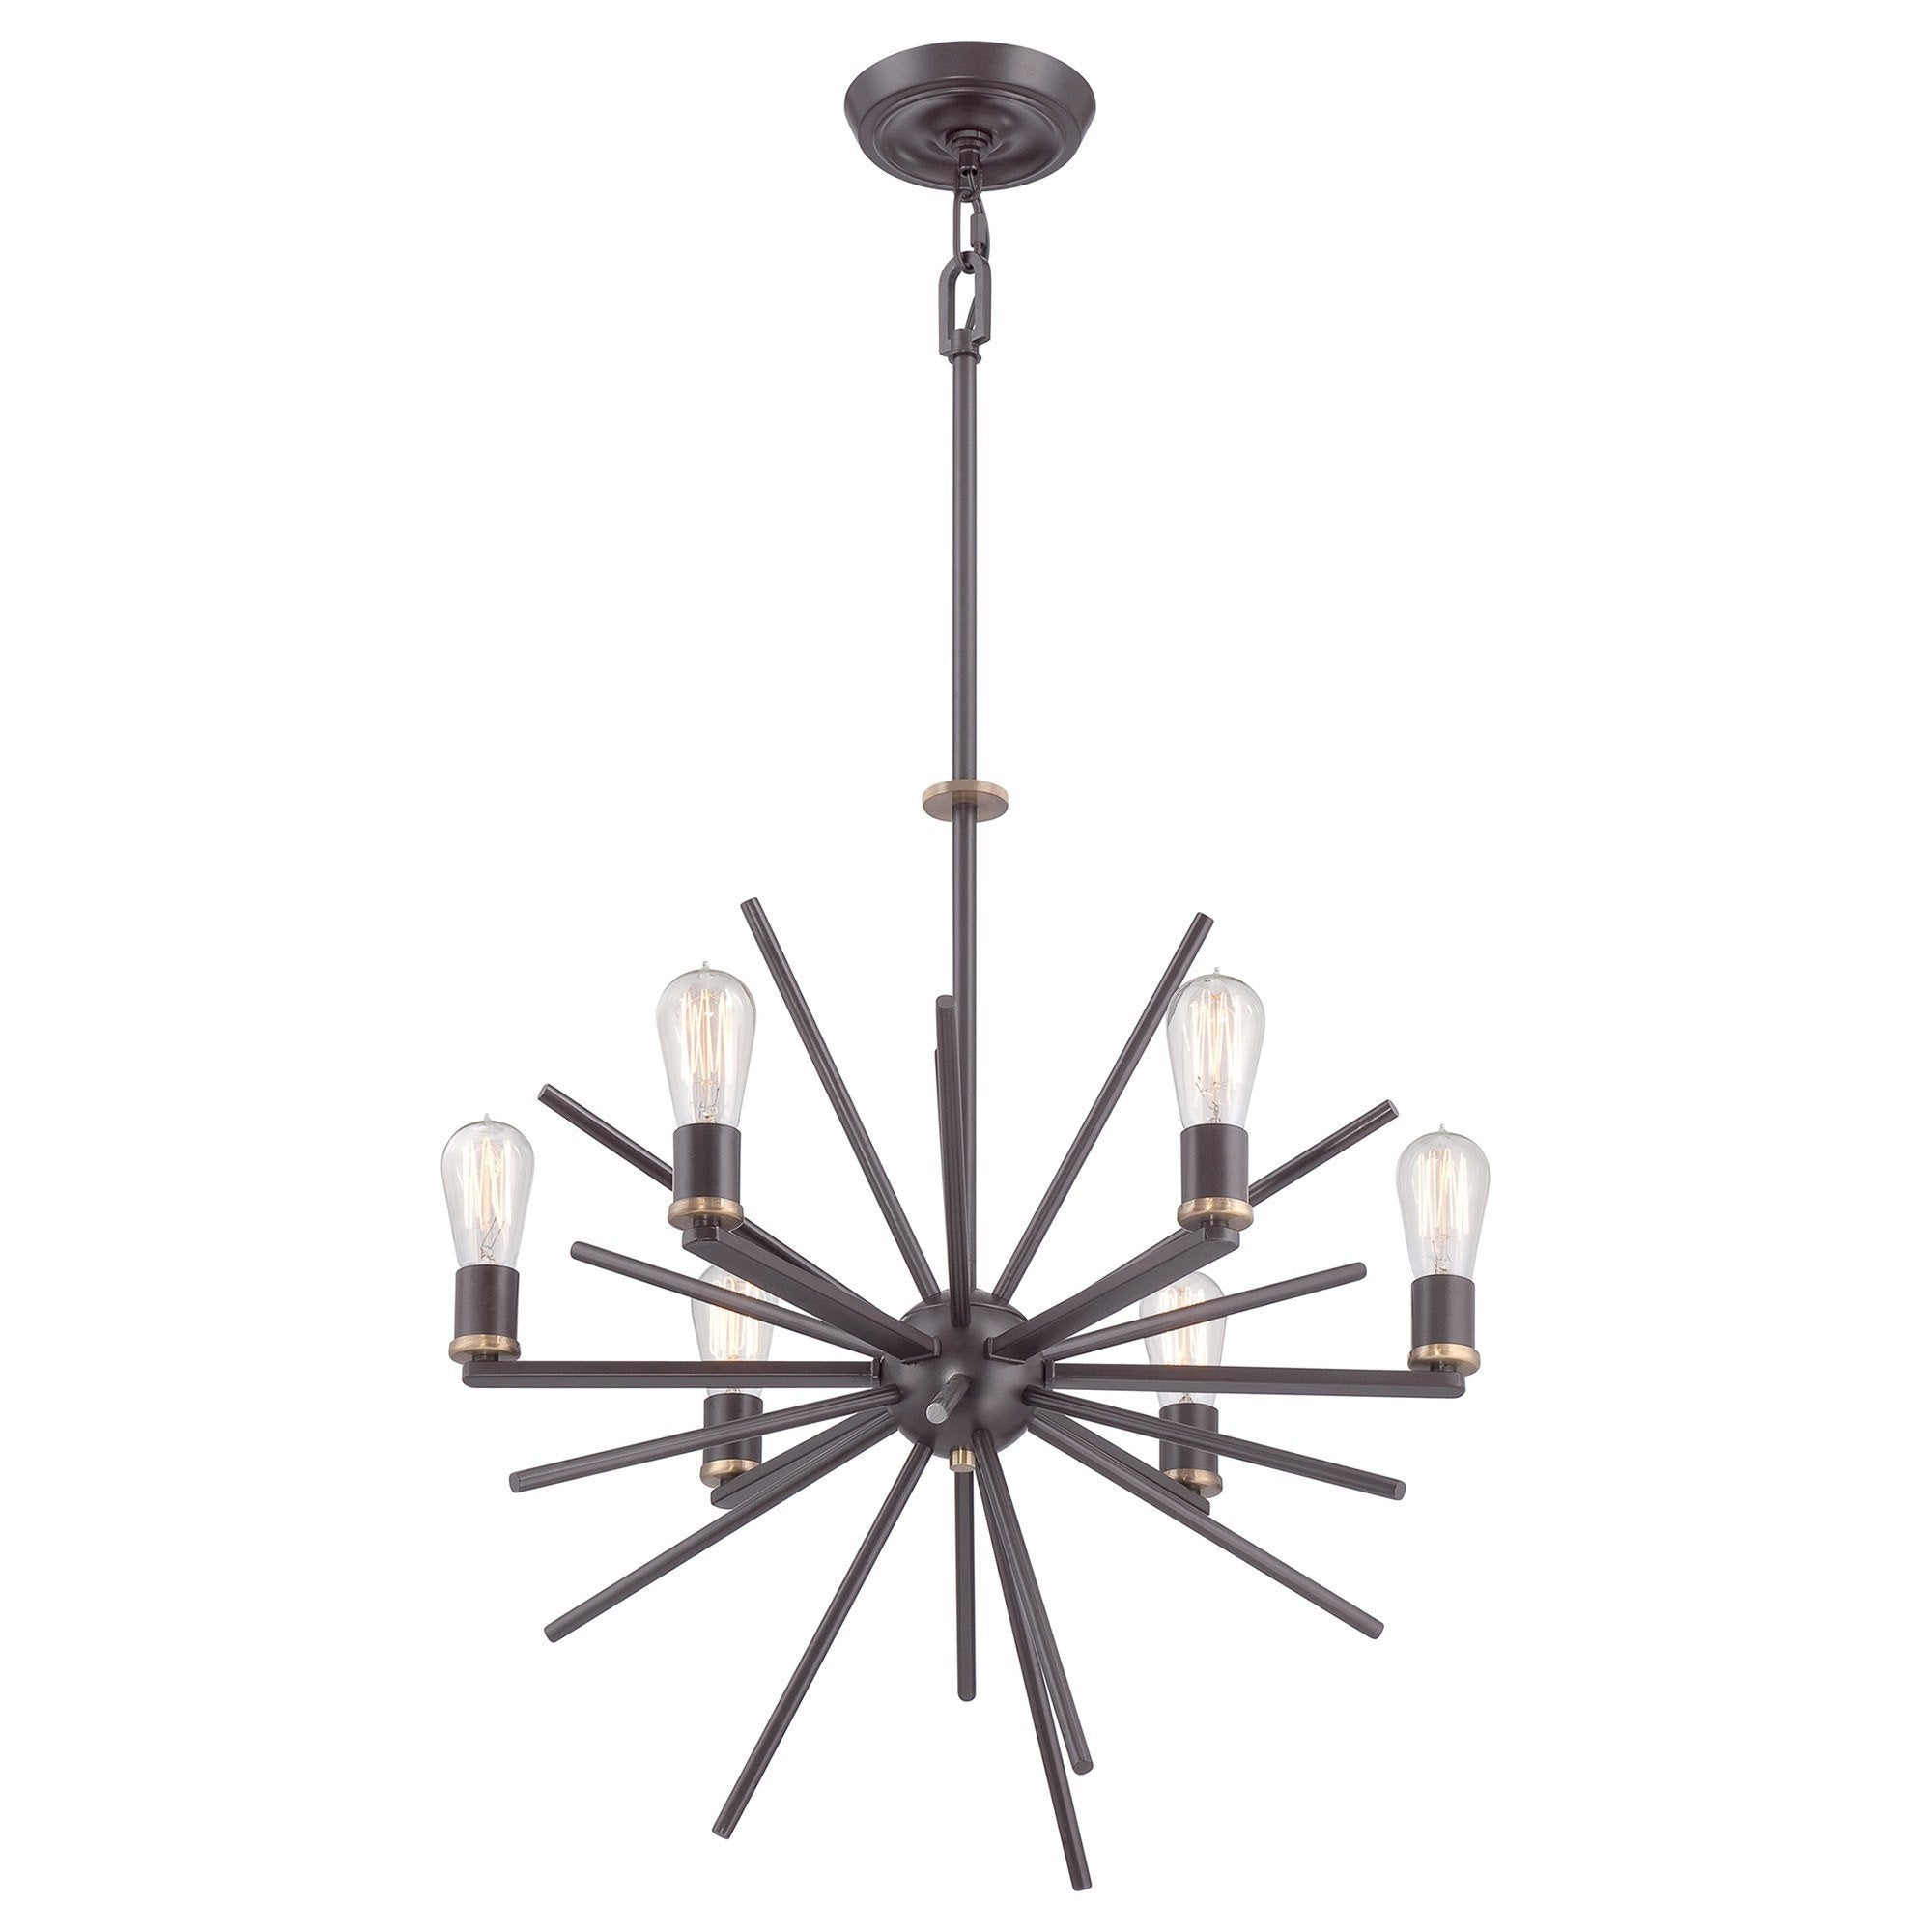 Quoizel Carnegie 6 Light Chandelier - London Lighting - 1